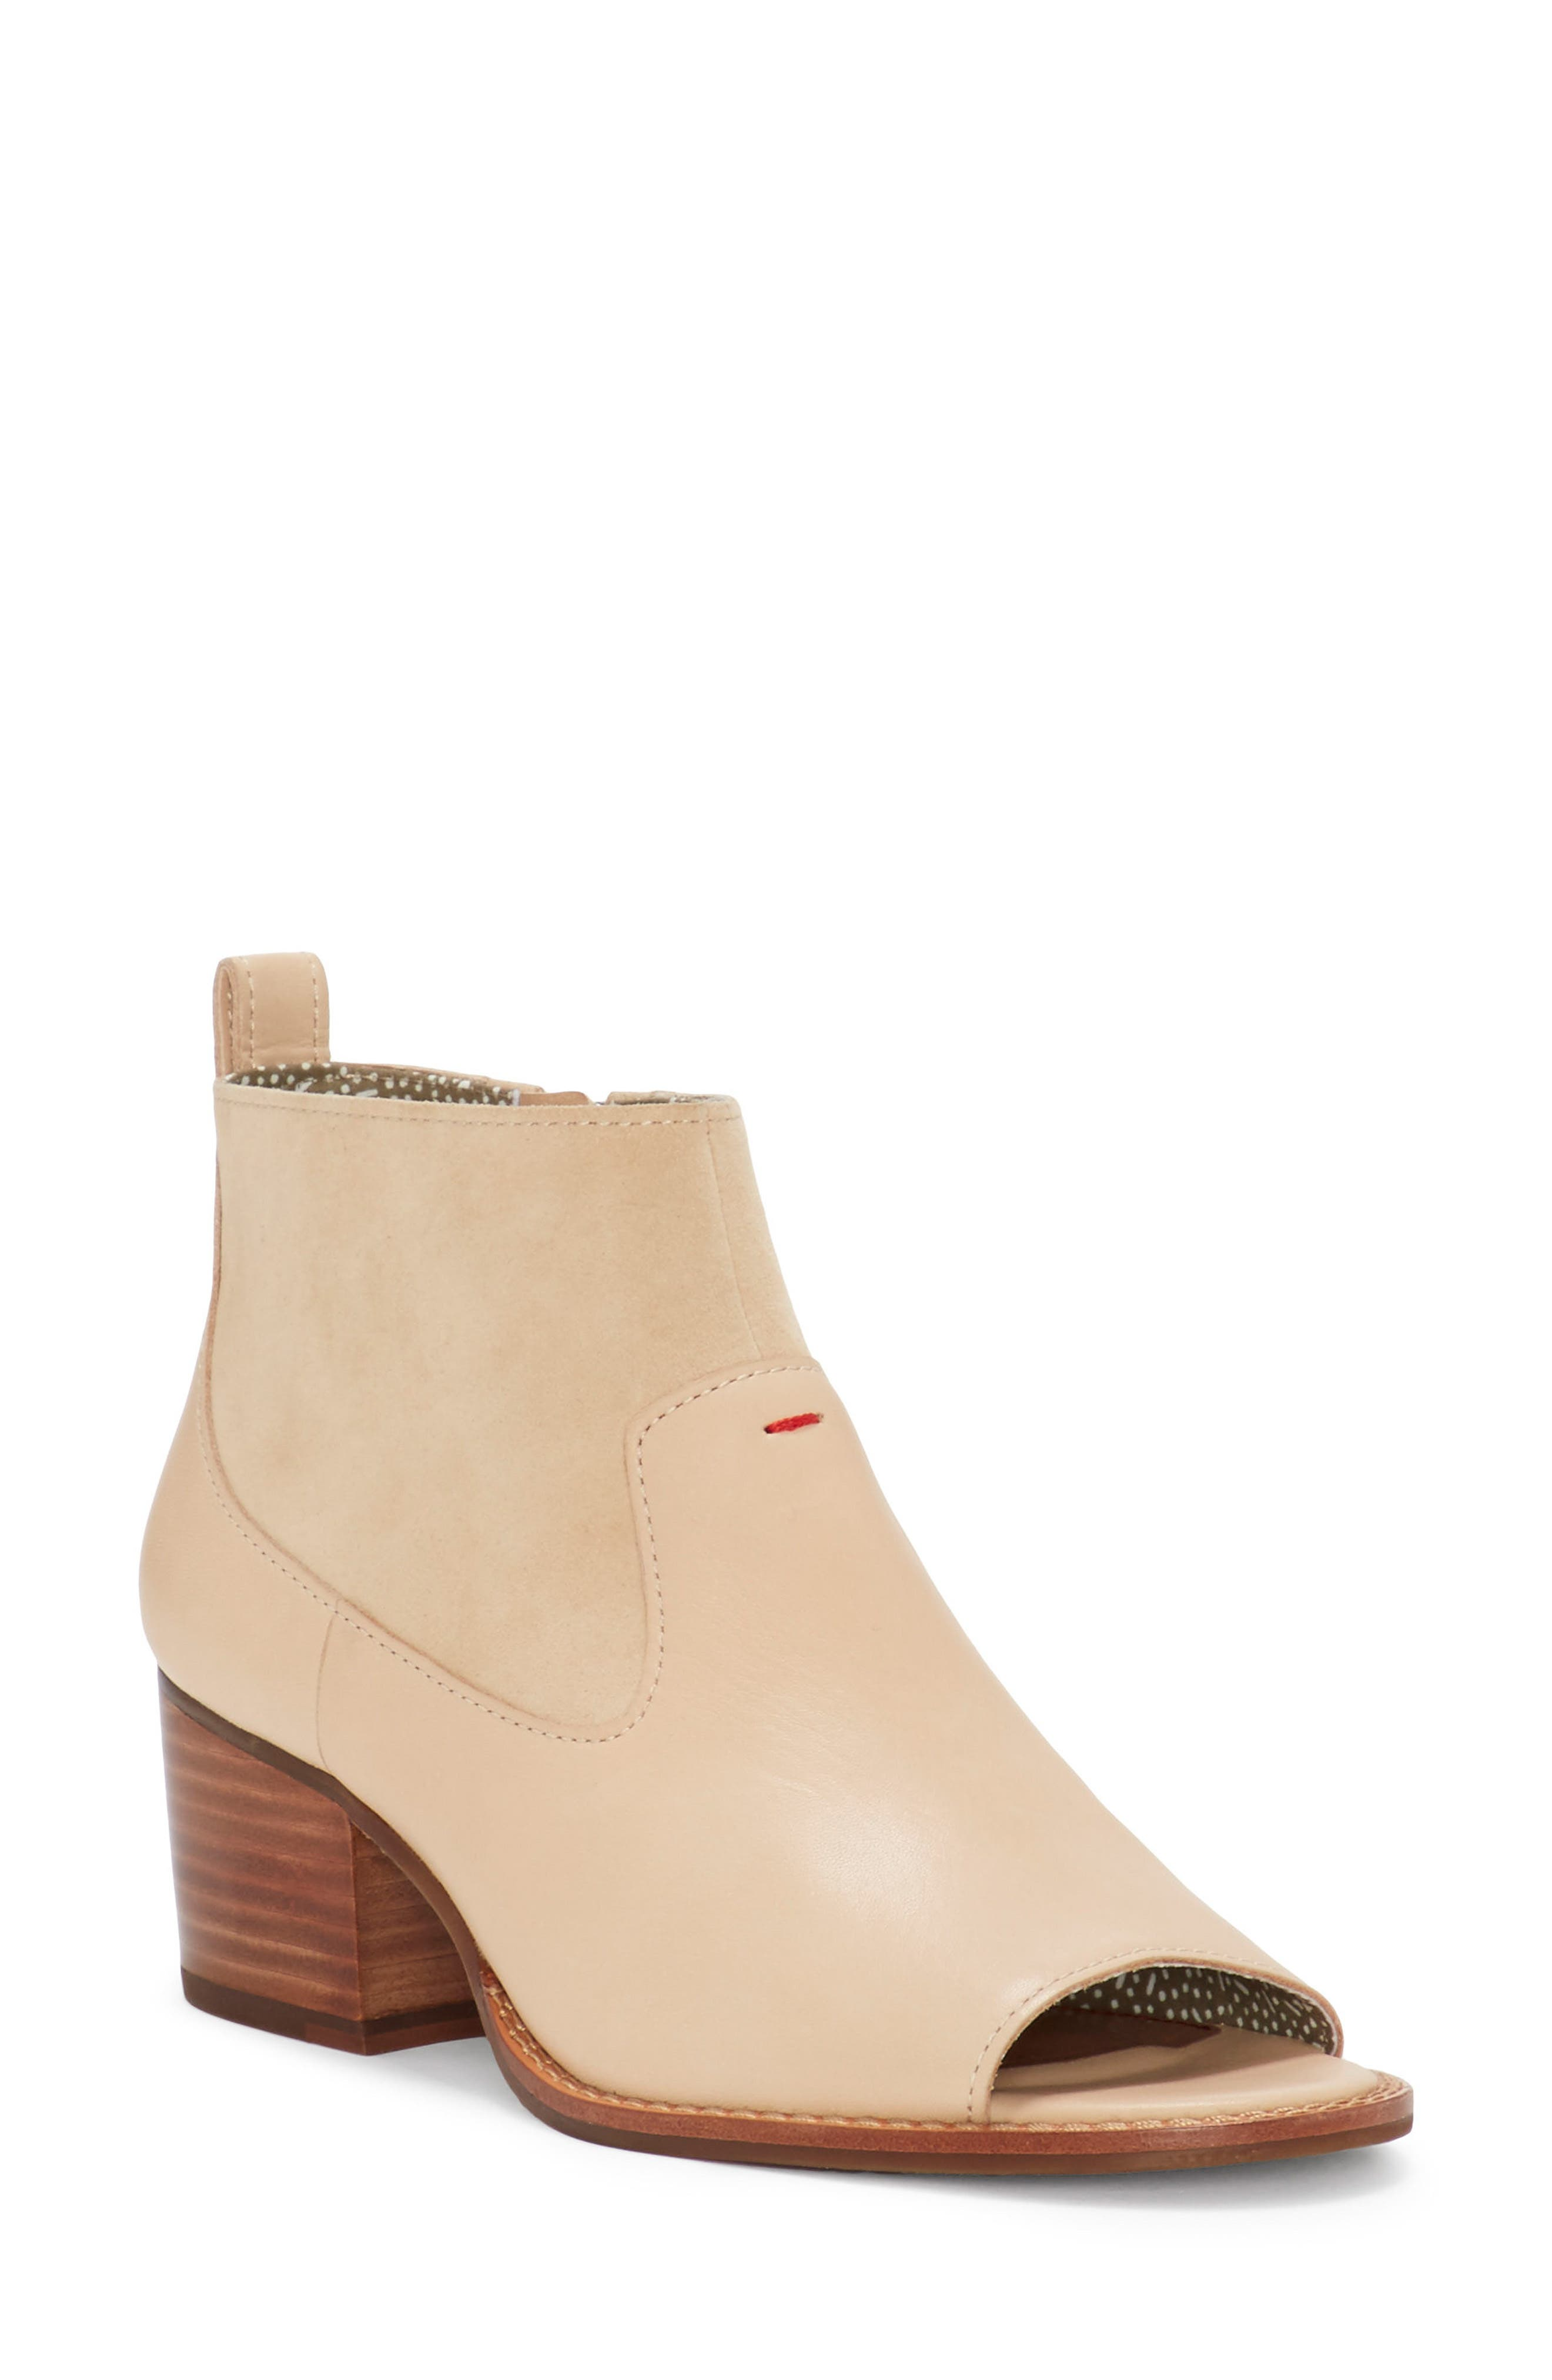 Alternate Image 1 Selected - ED Ellen DeGeneres Traison Peep Toe Bootie (Women)